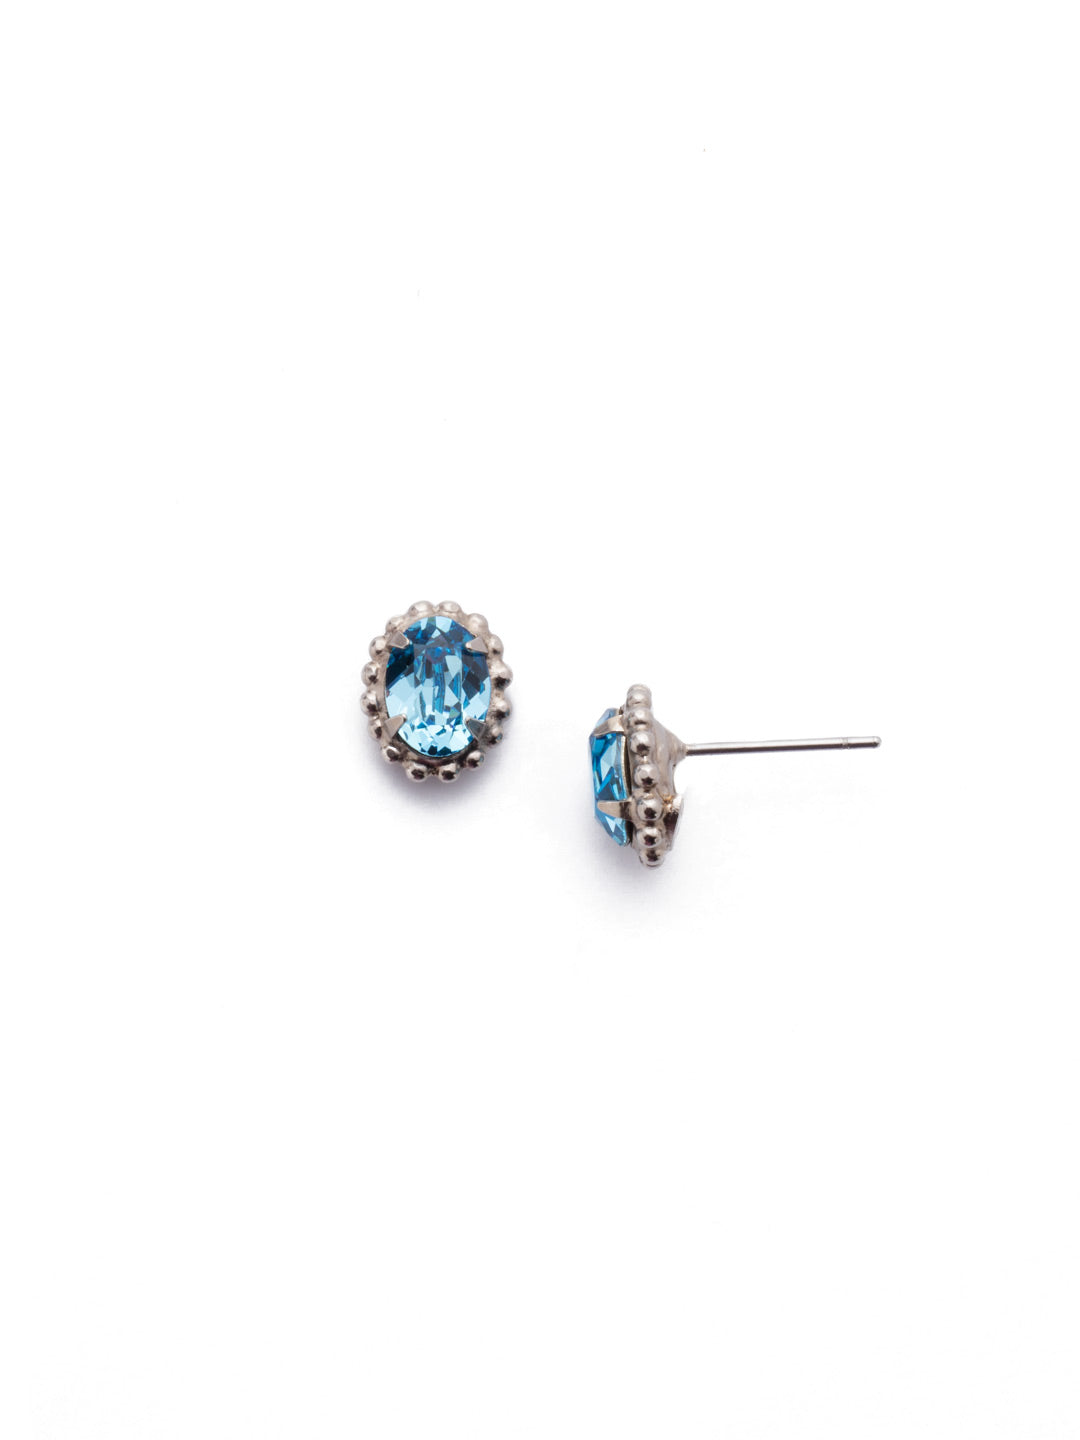 Maisie Stud Earrings - EEH11ASAQU